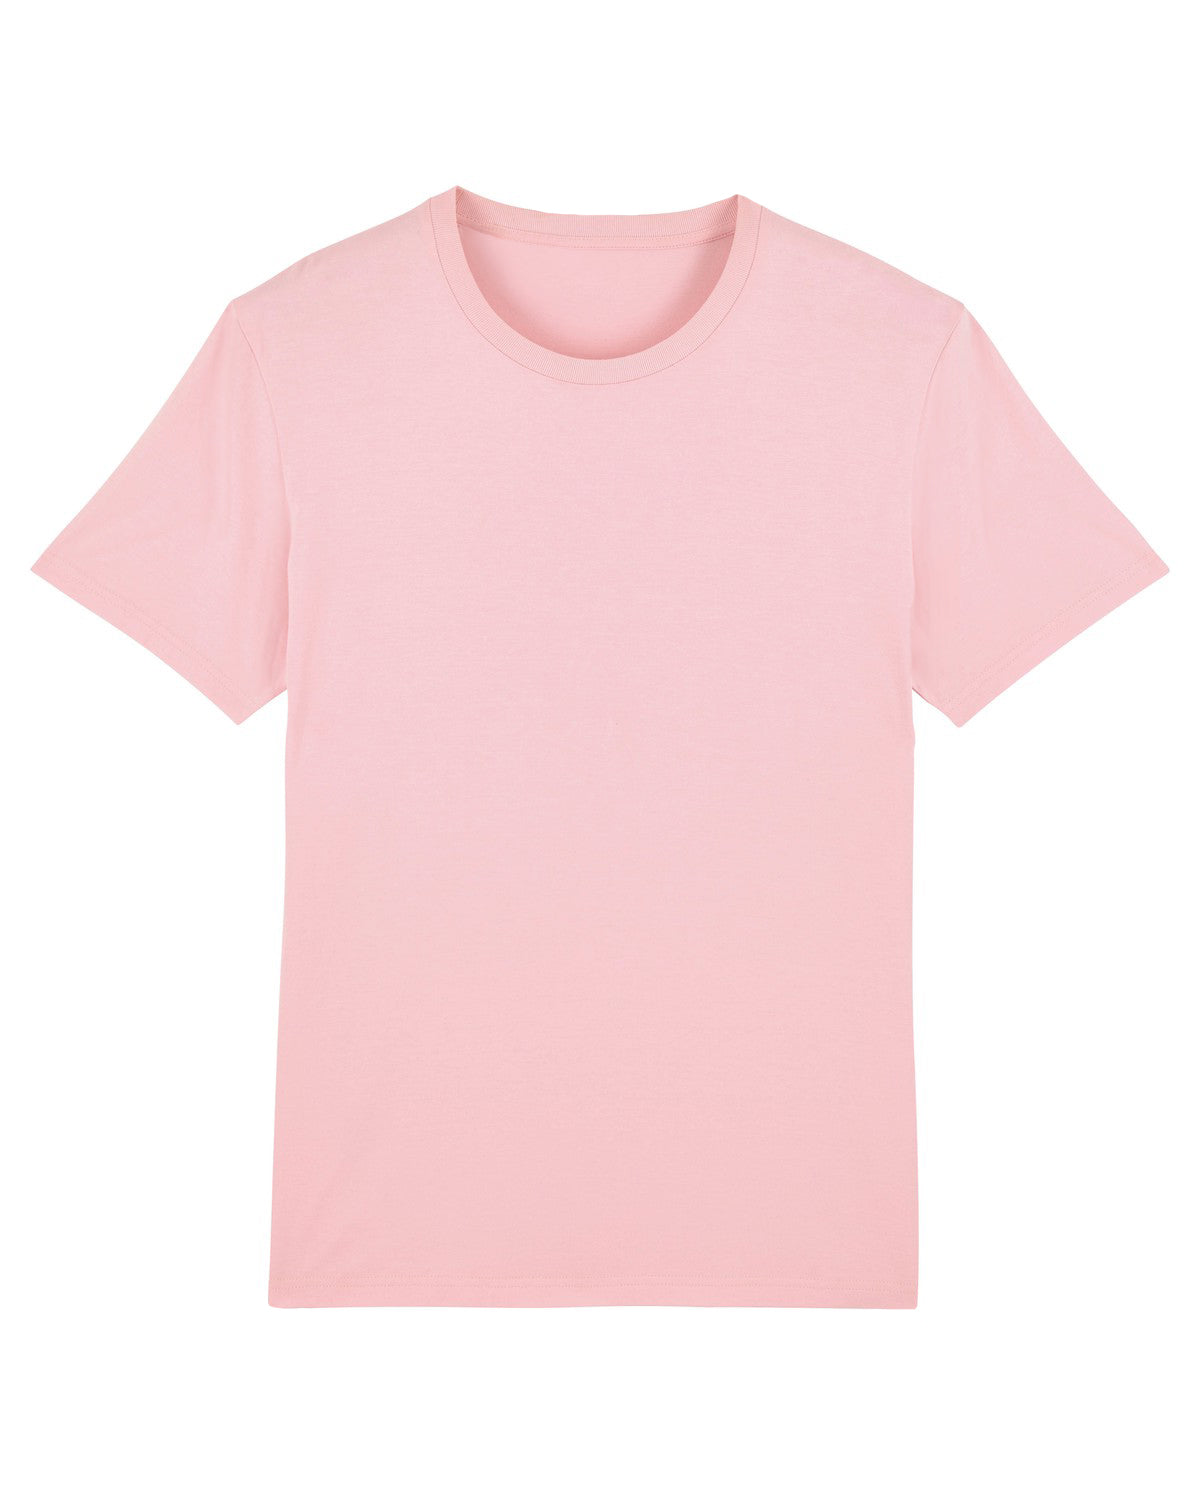 Attenborough Organic T-Shirt - Classic Pink